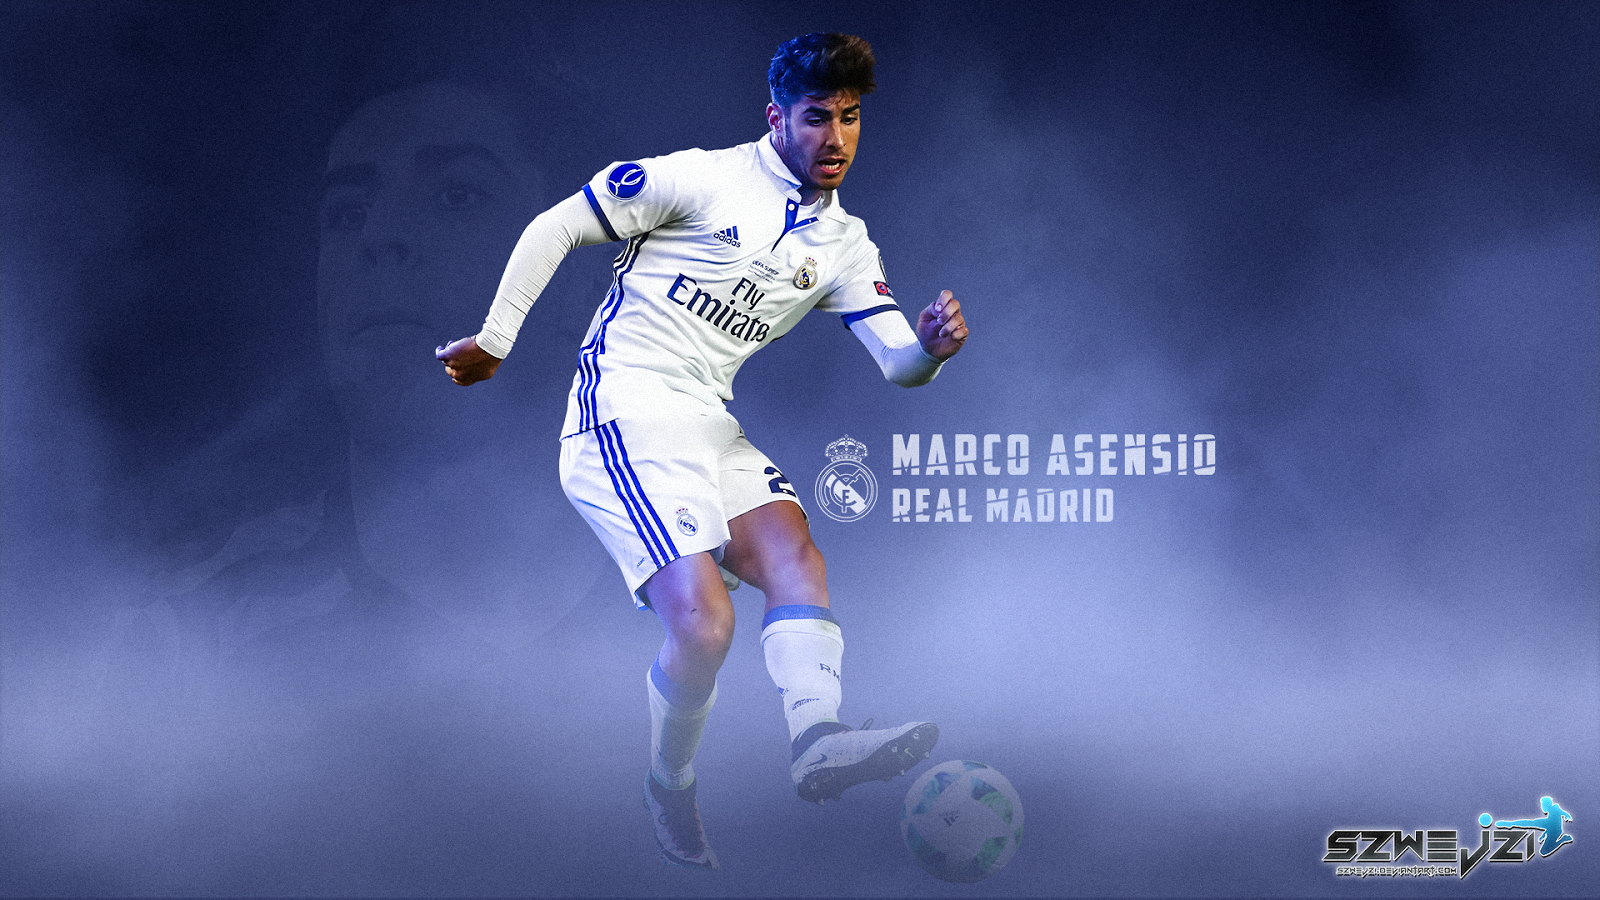 Free Download Marco Asensio Wallpaper 7 1600 X 900 Stmednet